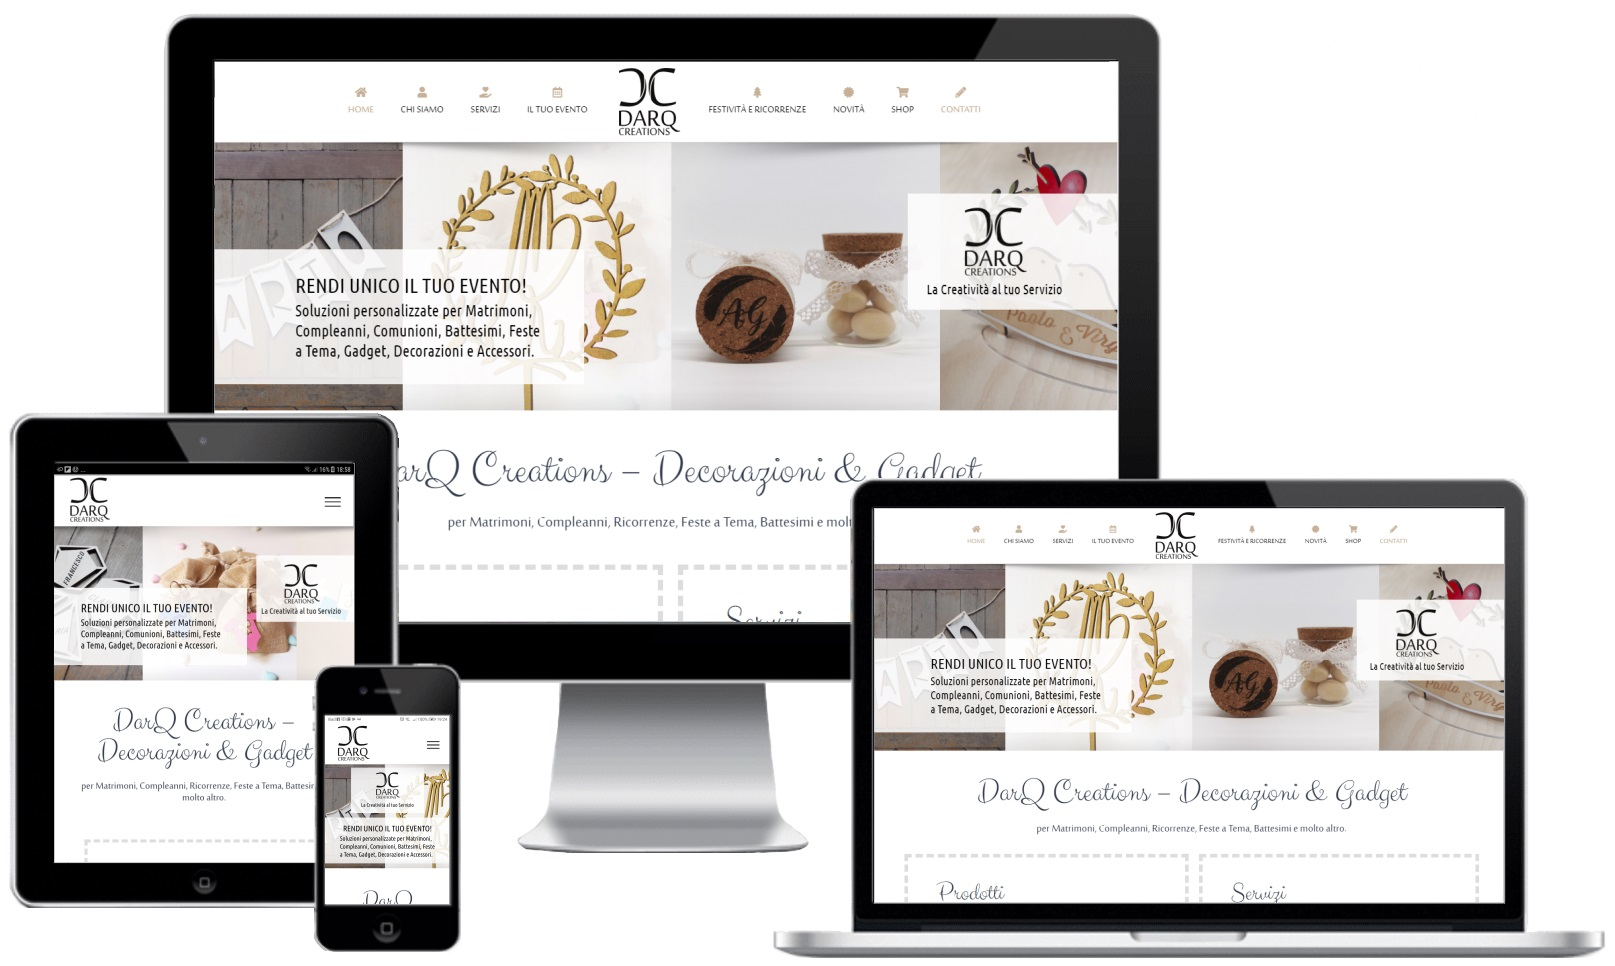 ourweb web agency - darq creations